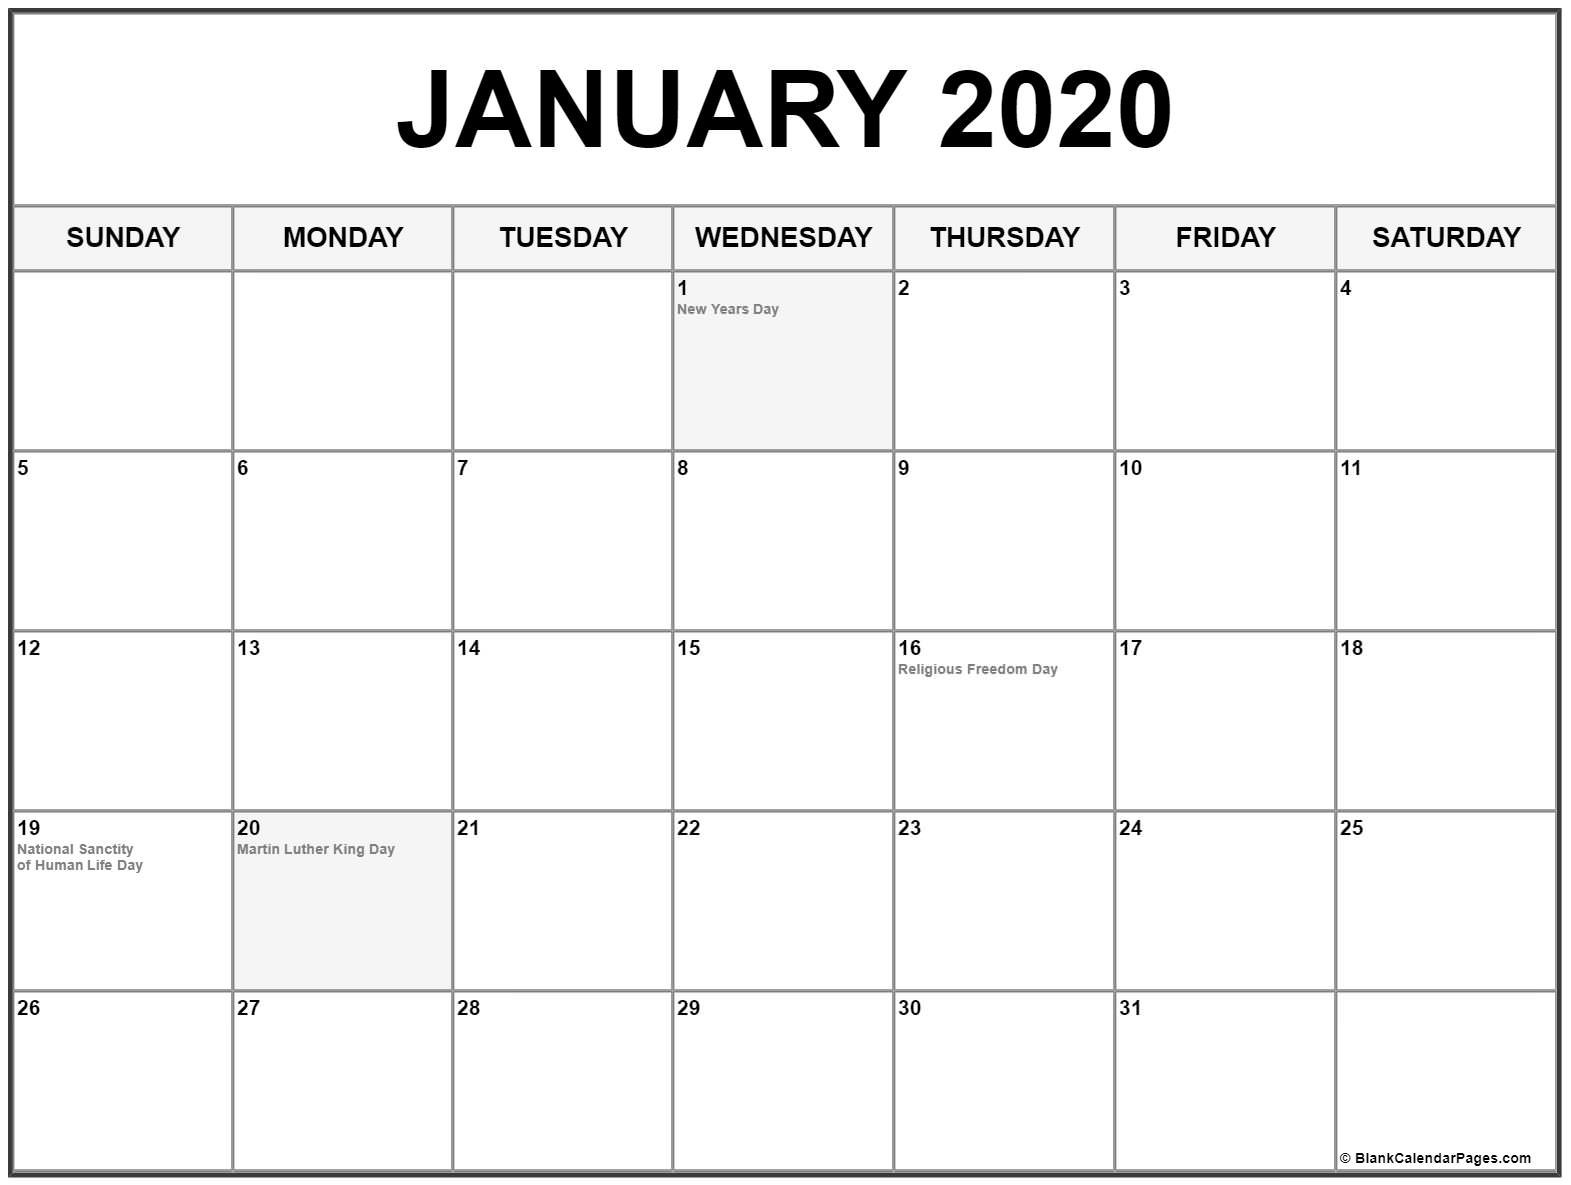 Collection Of January 2020 Calendars With Holidays